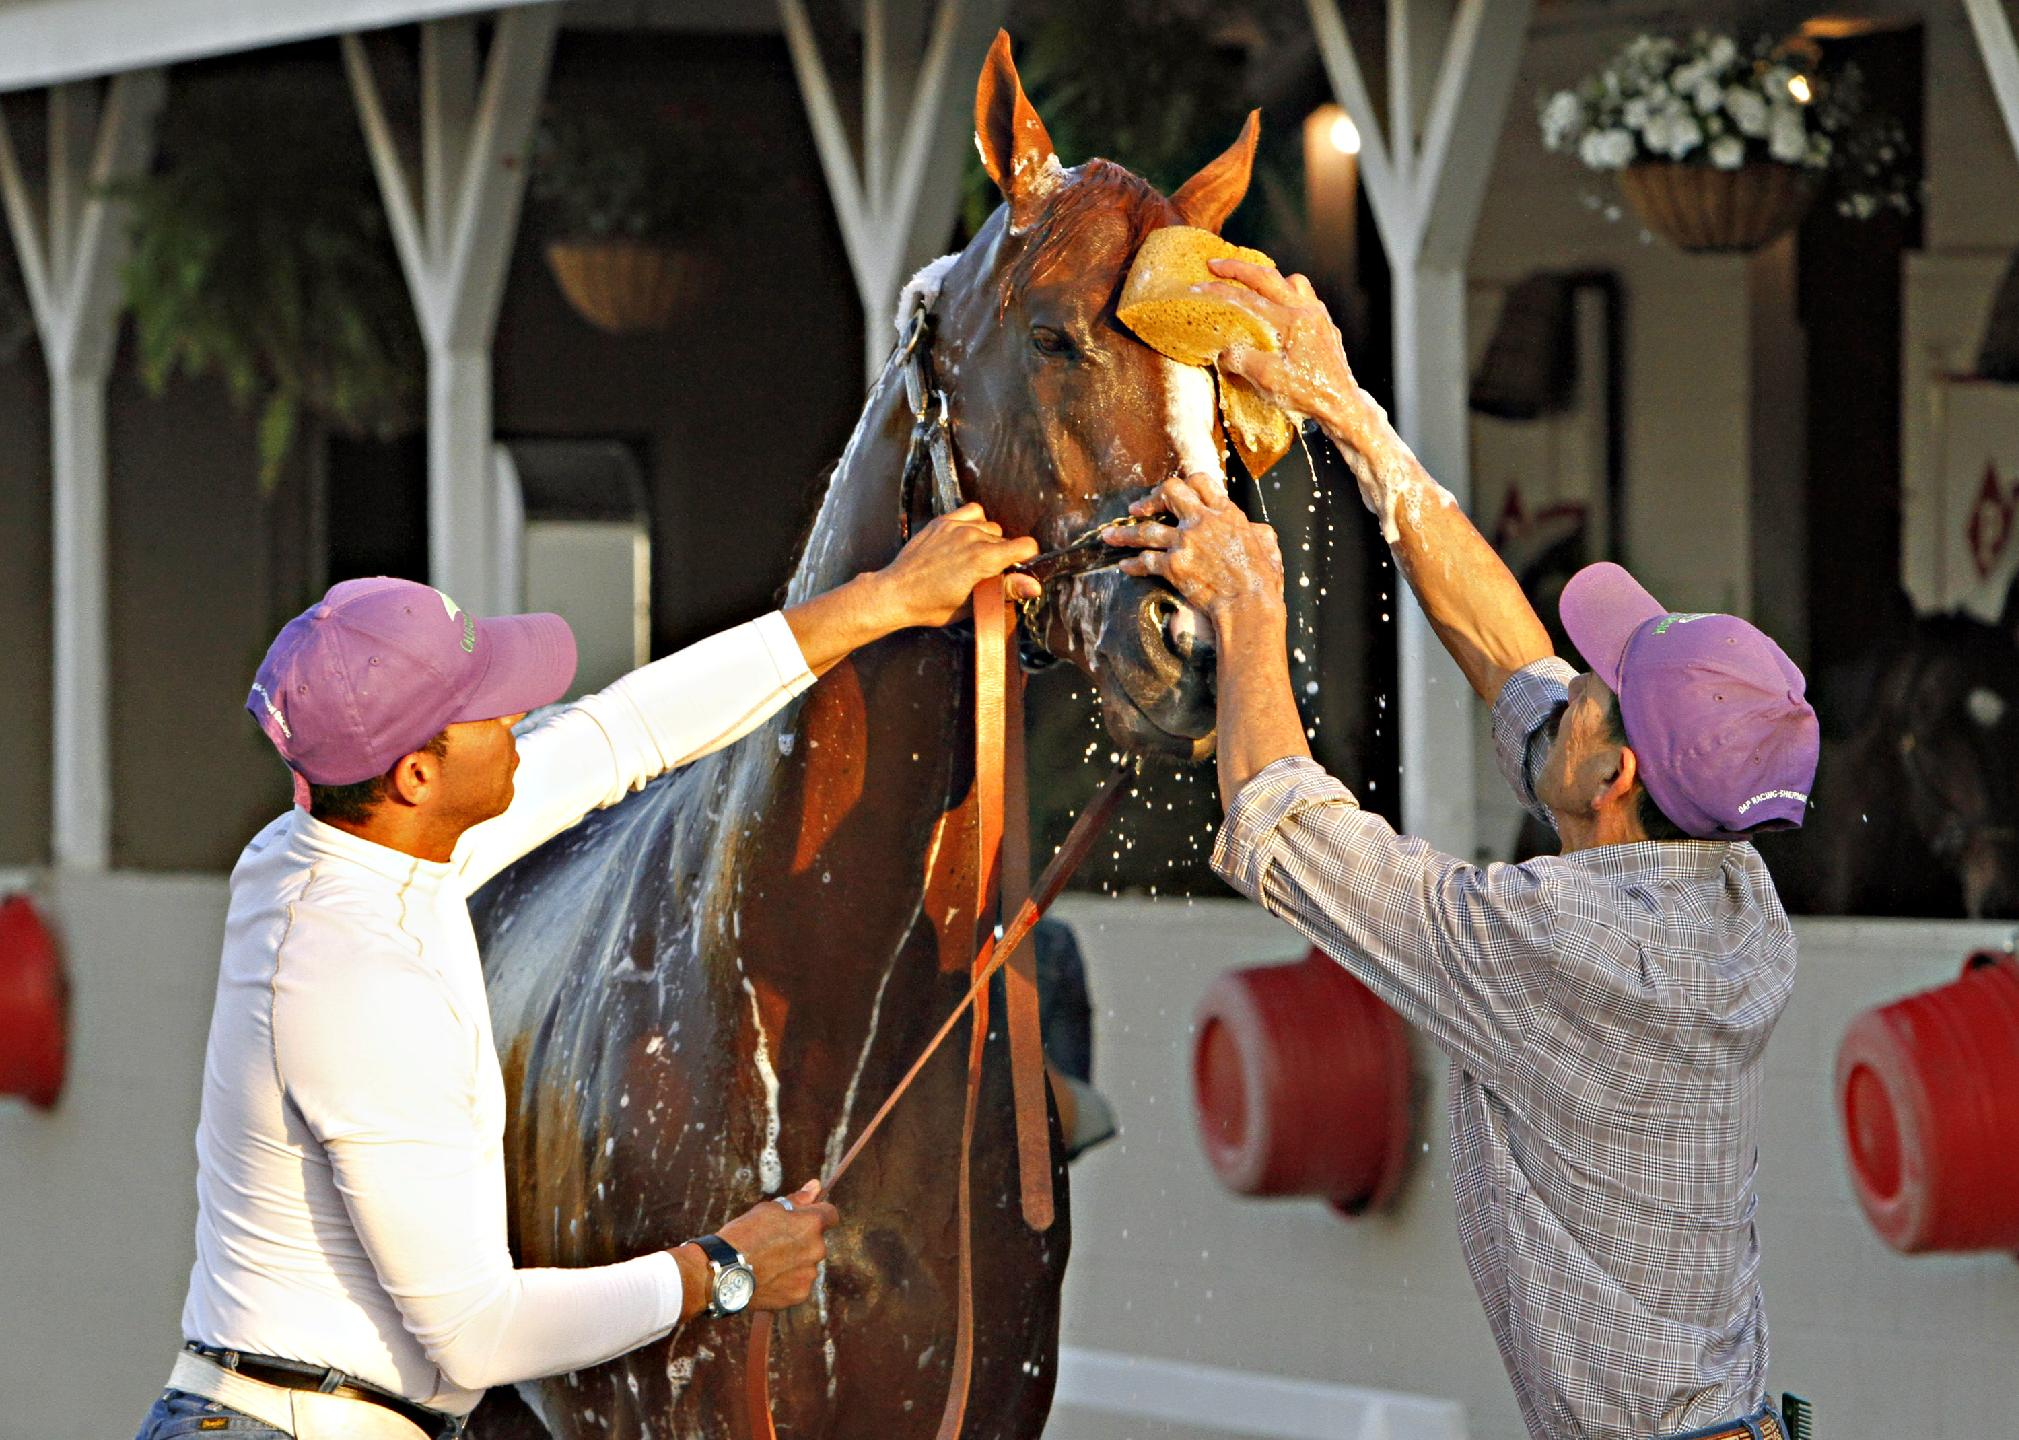 Kentucky Derby winner California Chrome reacts as groomer  Raul Rodriguez, right, gives him a bath after a jog on the track at Churchill Downs in Louisville, Ky., Wednesday, May 7, 2014. Holding the colt at left is exercise rider Willy Delgado